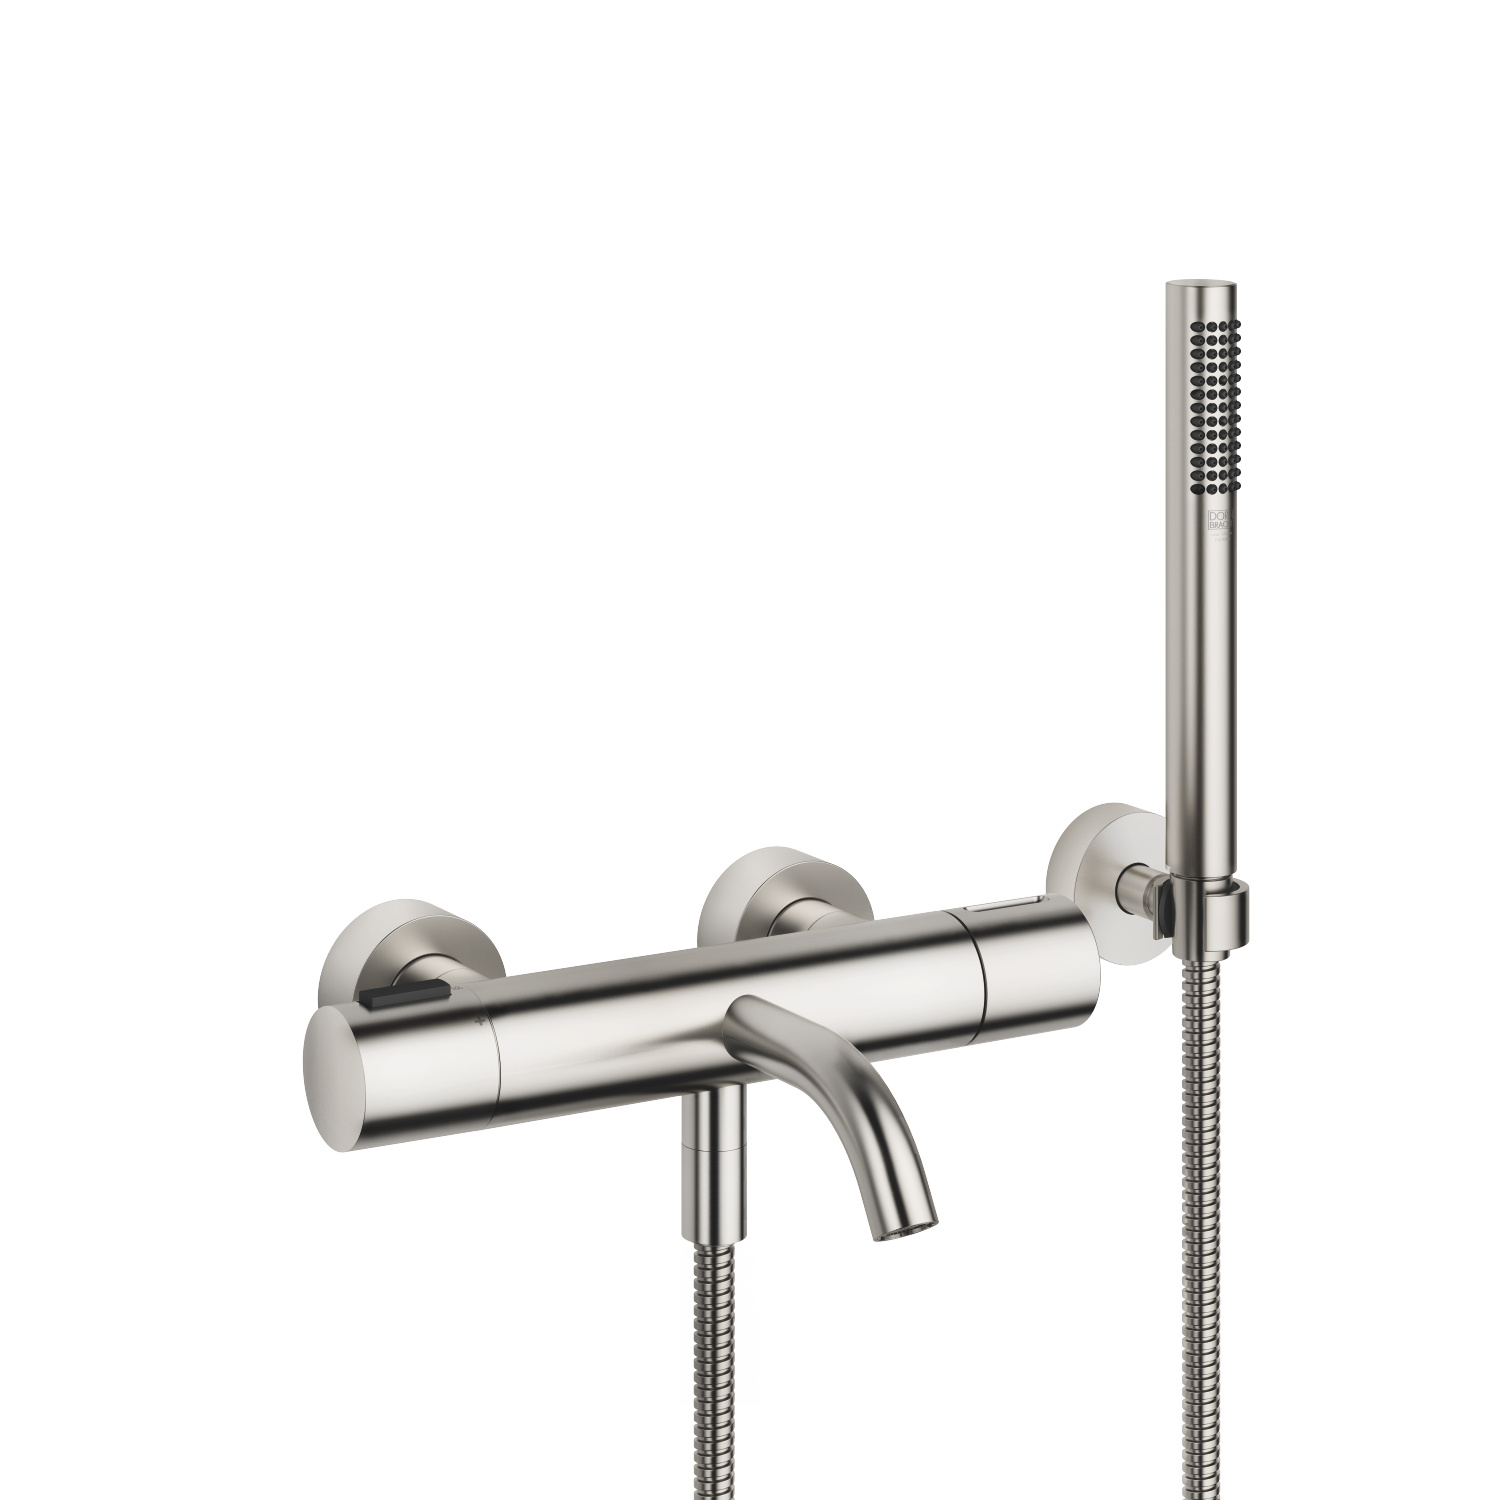 Tub thermostat for wall-mounted installation with hand shower set - platinum matte